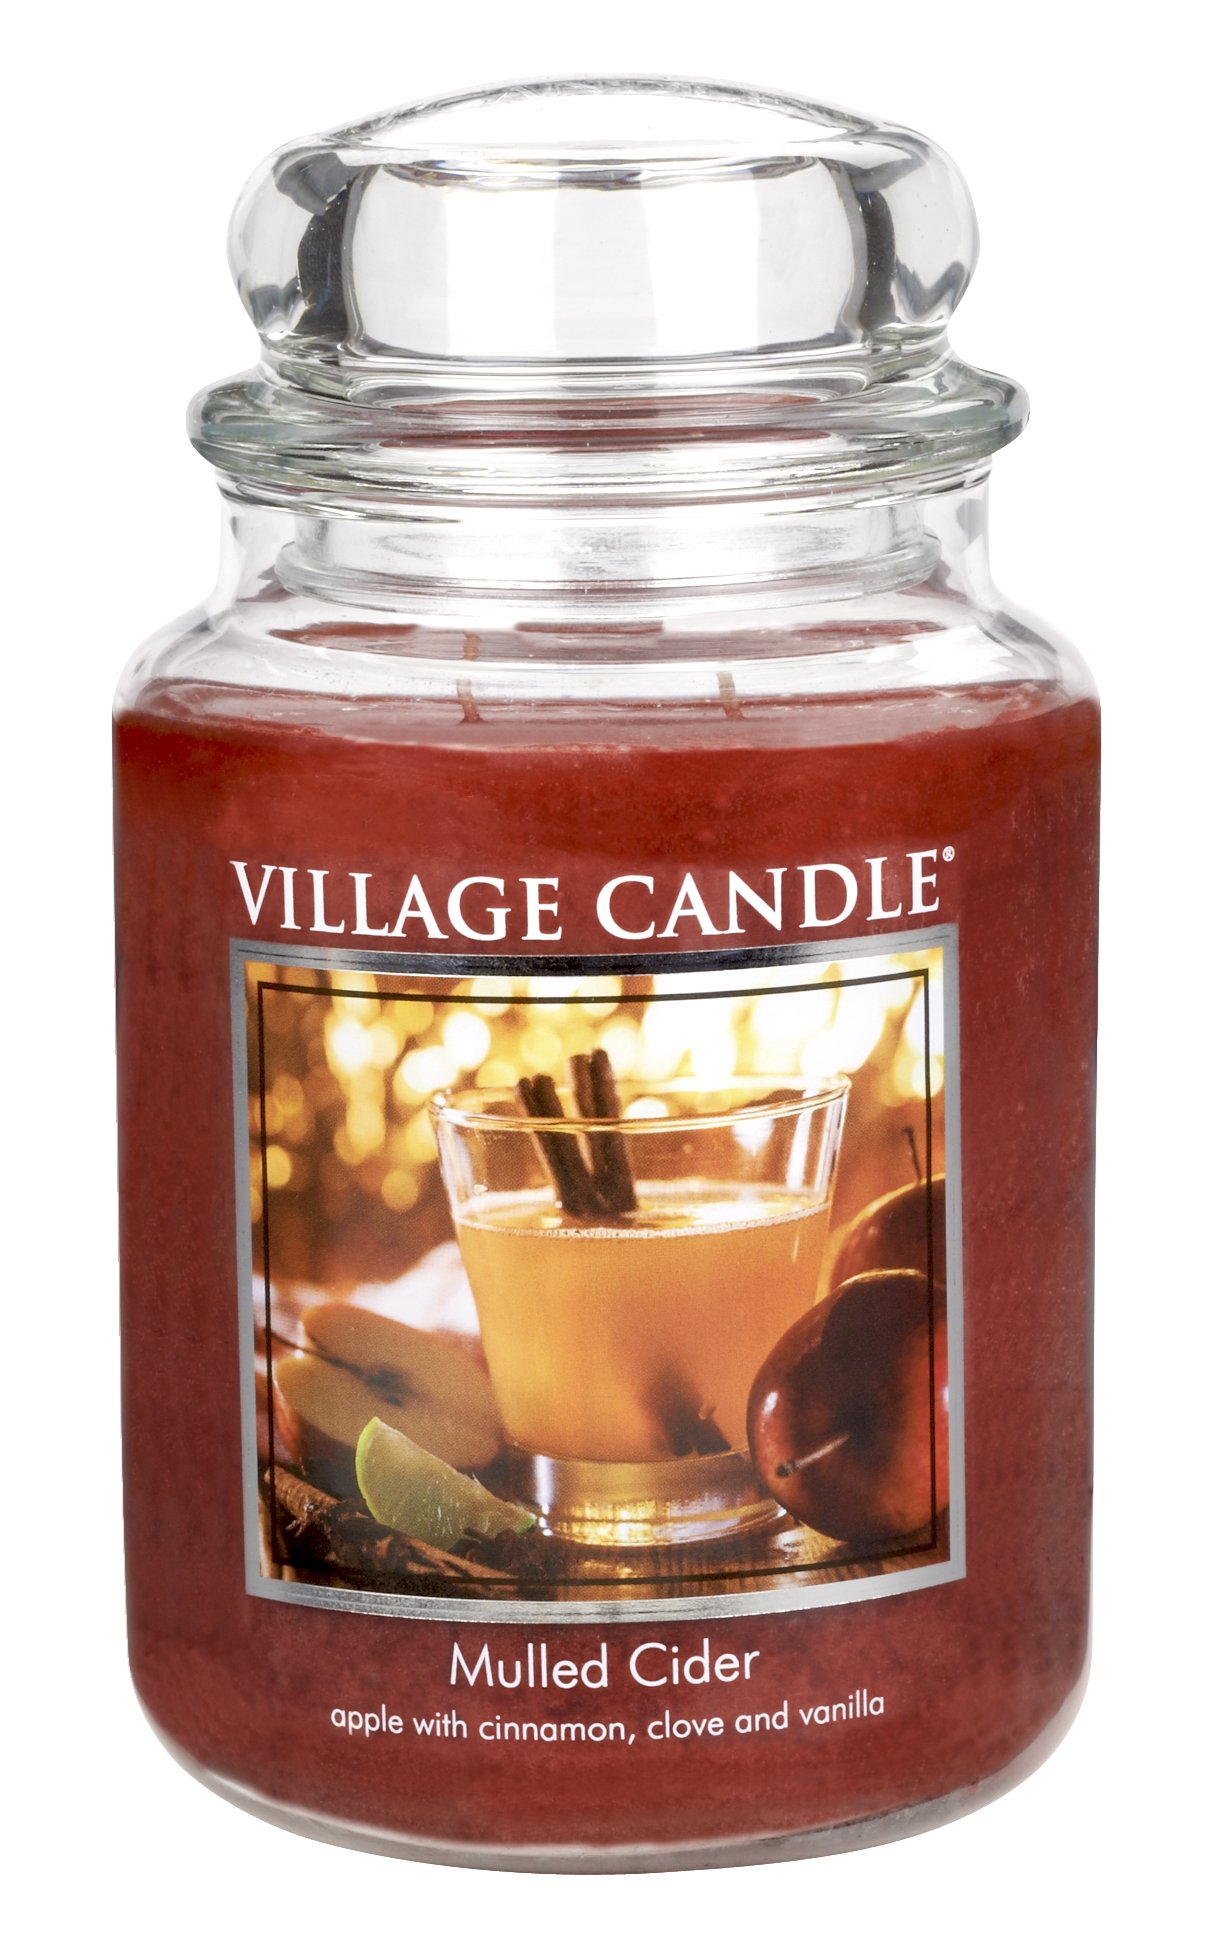 Village Candle Mulled Cider 26 oz Glass Jar Scented Candle, Large - Fragrance Notes Of Apple, Cinnamon, Clove, And Vanilla Pure, Rich, And Vibrant Deep Red Colored Food-Grade Paraffin Wax Fragranced By The World's Finest Scented Oils Village Candle's Pioneered Dual Wick Technology Provides Greater, Consistent Fragrance Release, Longer Burn Time, And Even Wax Burn With Less Soot - living-room-decor, living-room, candles - 813Nkdm4V4L -